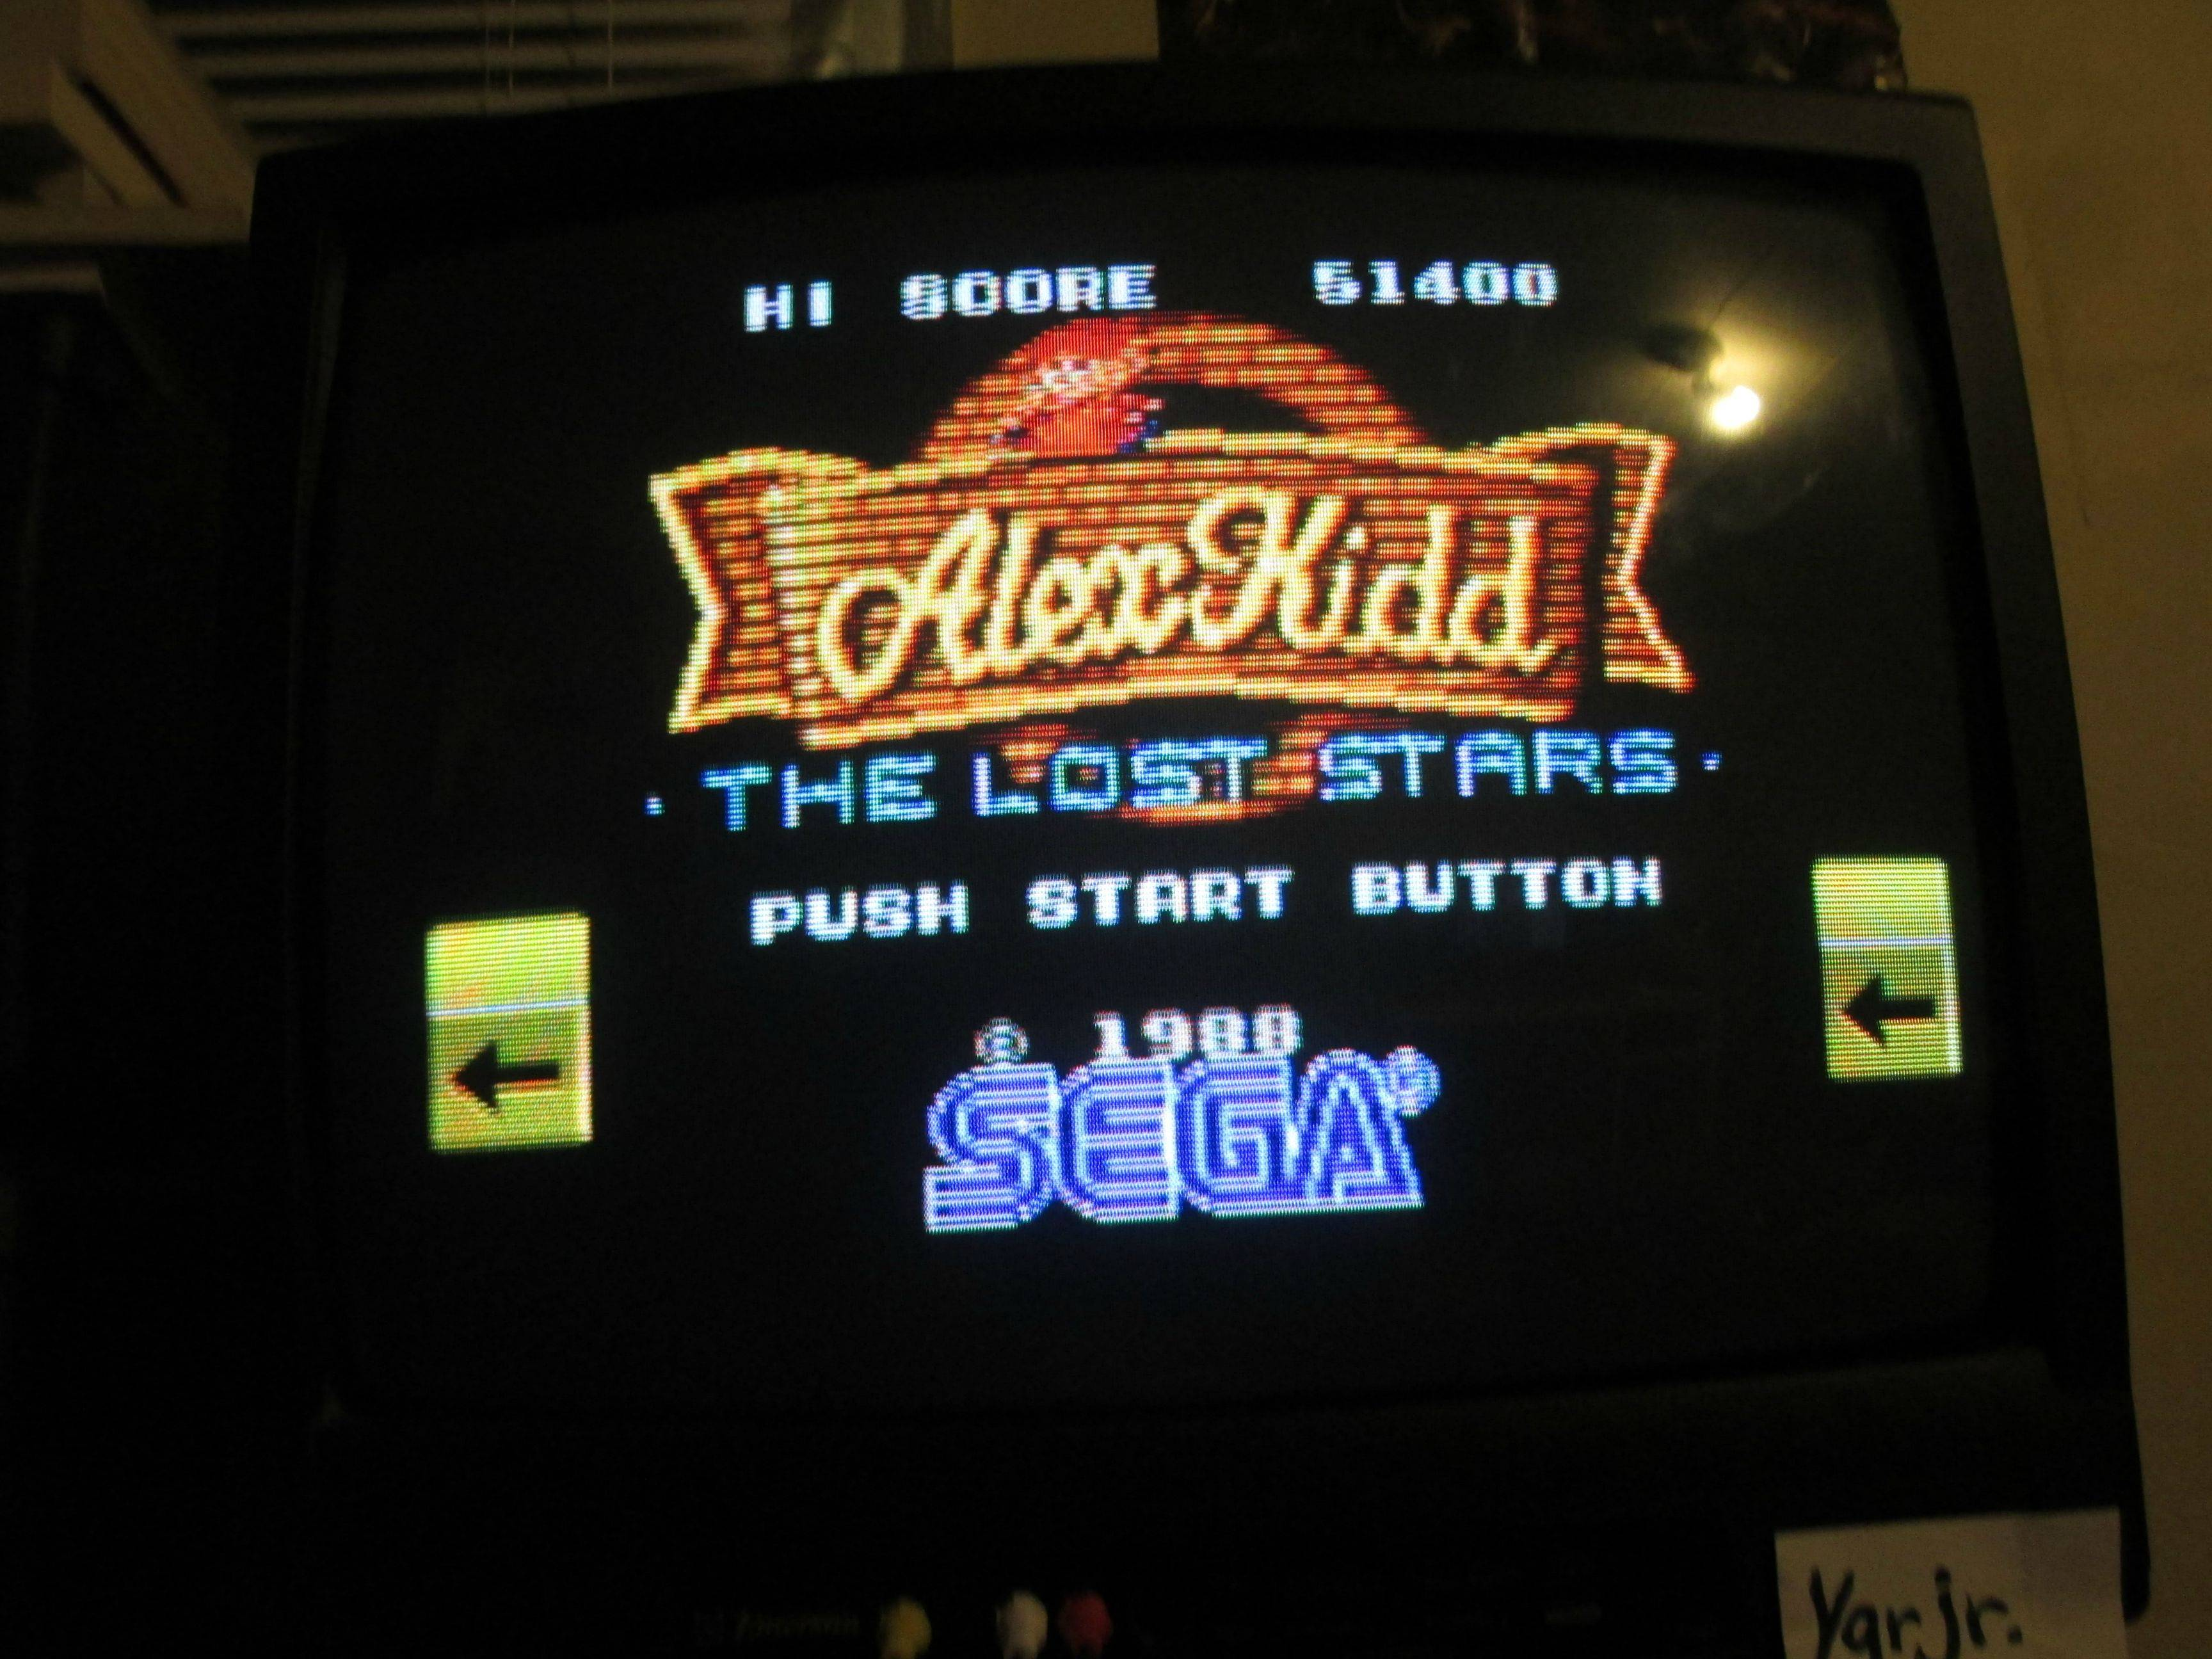 Alex Kidd: The Lost Stars 51,400 points